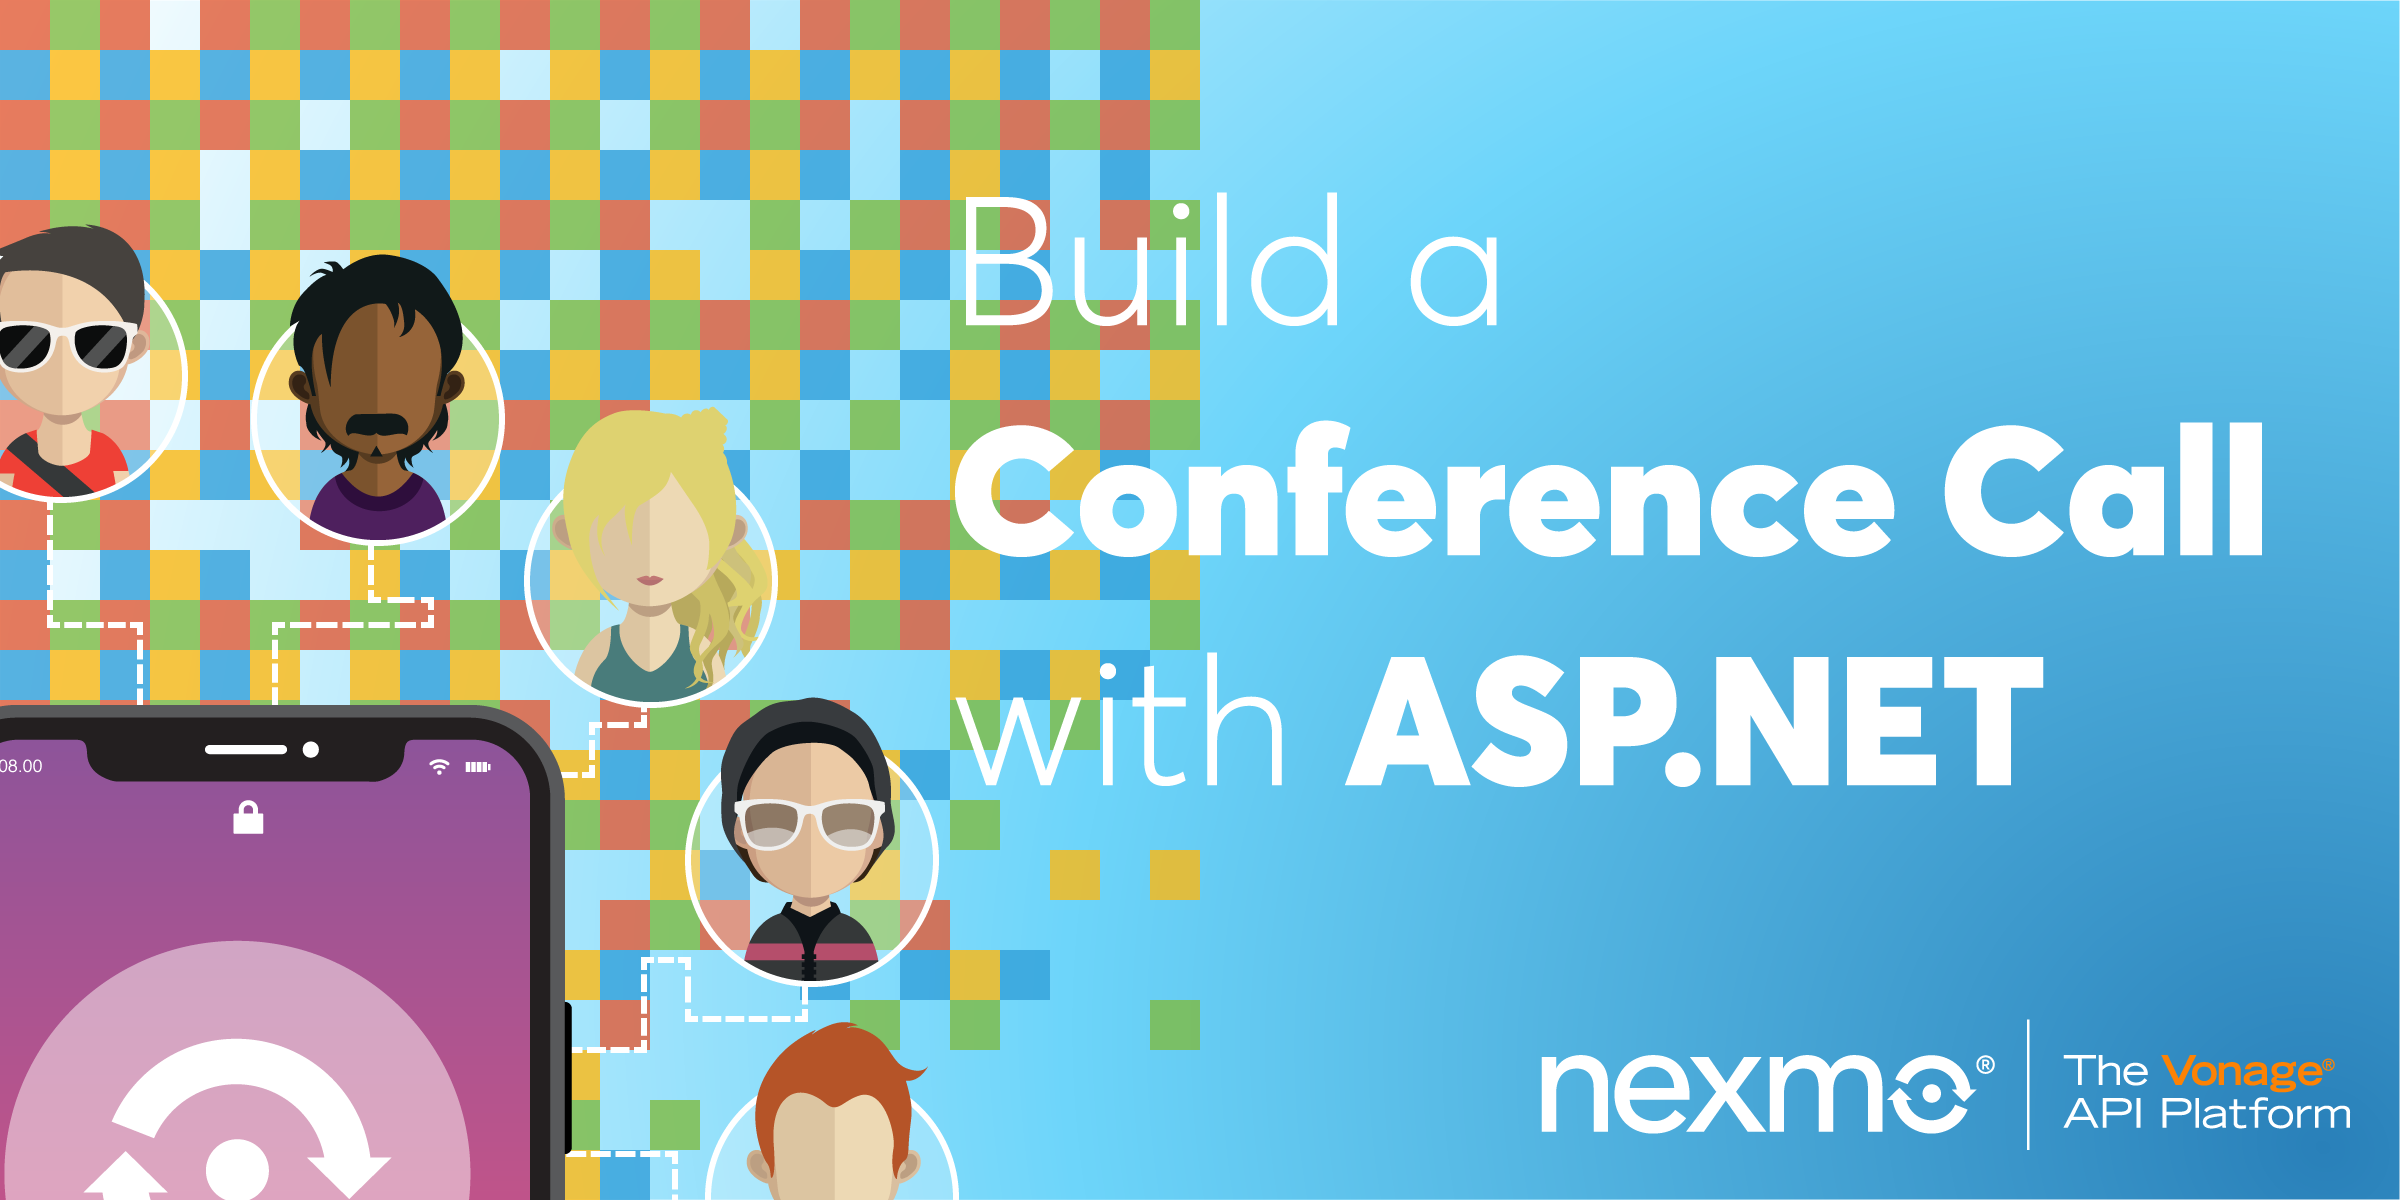 Build a Conference Call with the Nexmo Voice API and ASP.NET Core